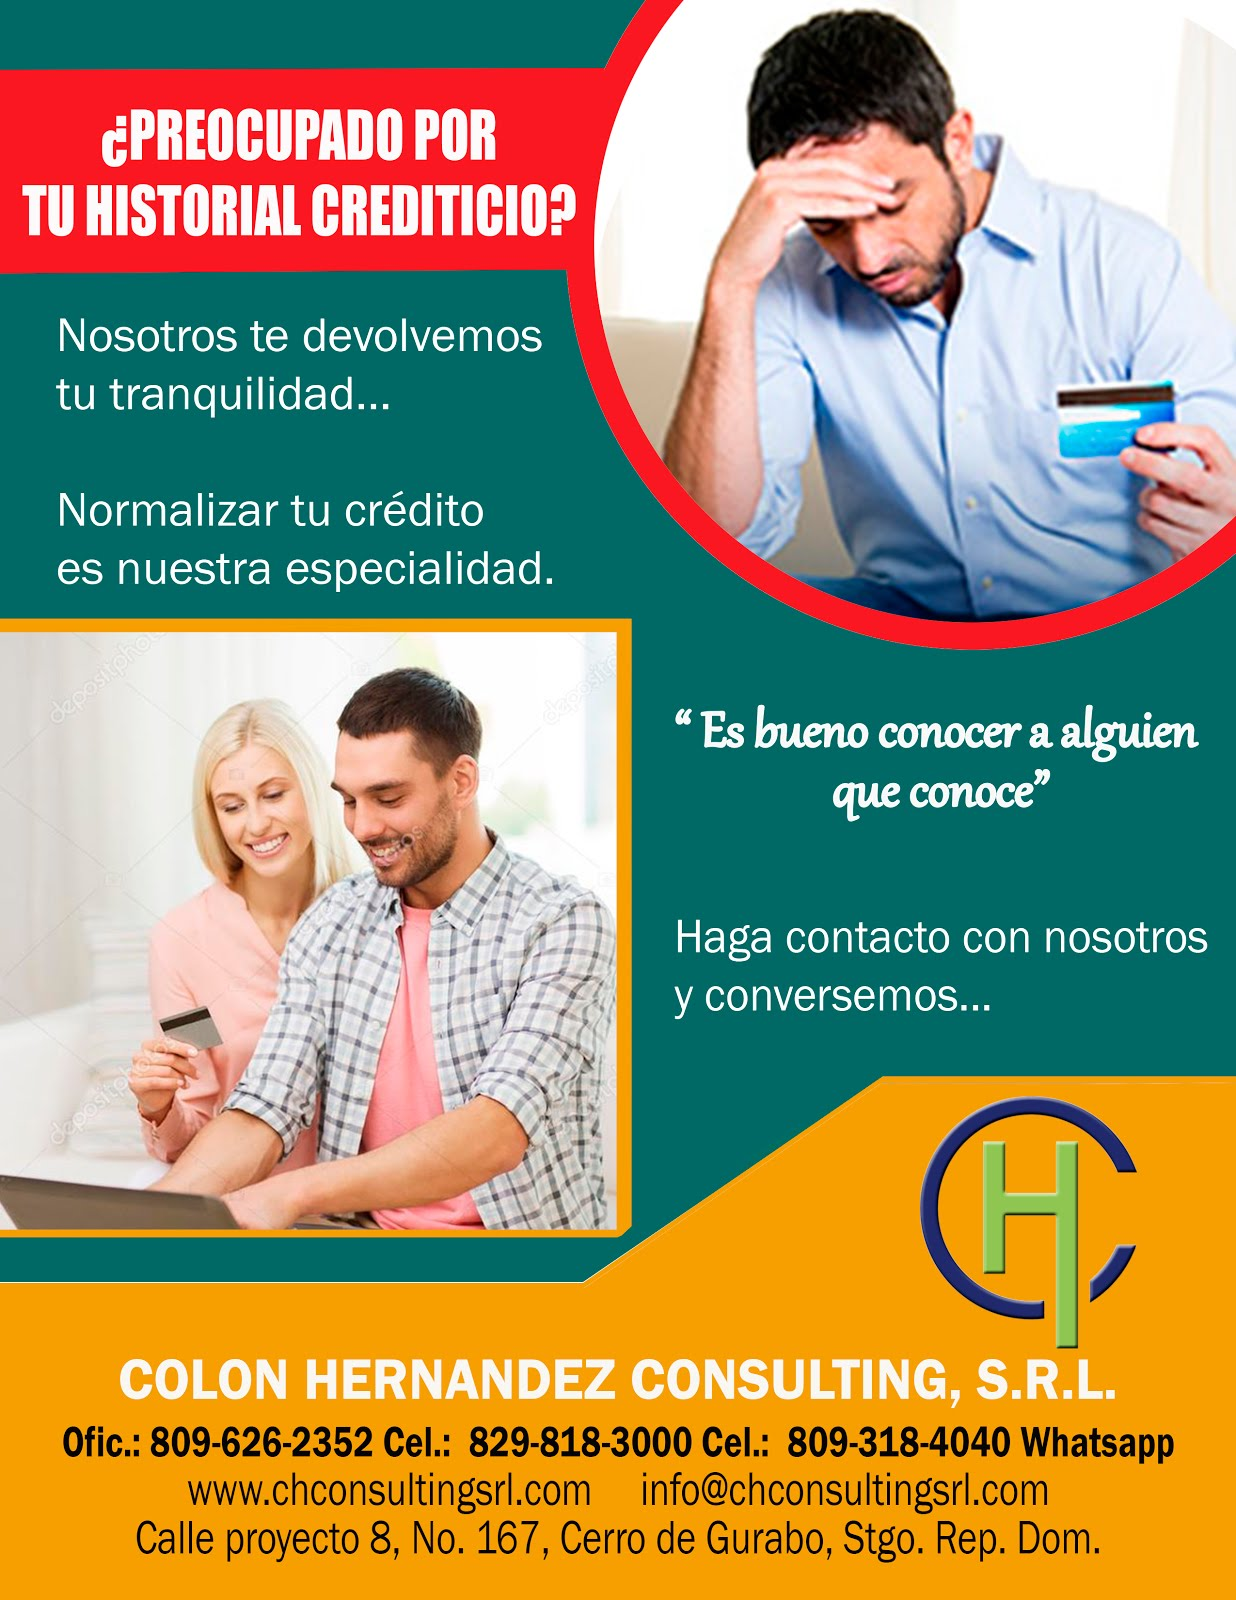 COLON HERNANDEZ CONSULTING